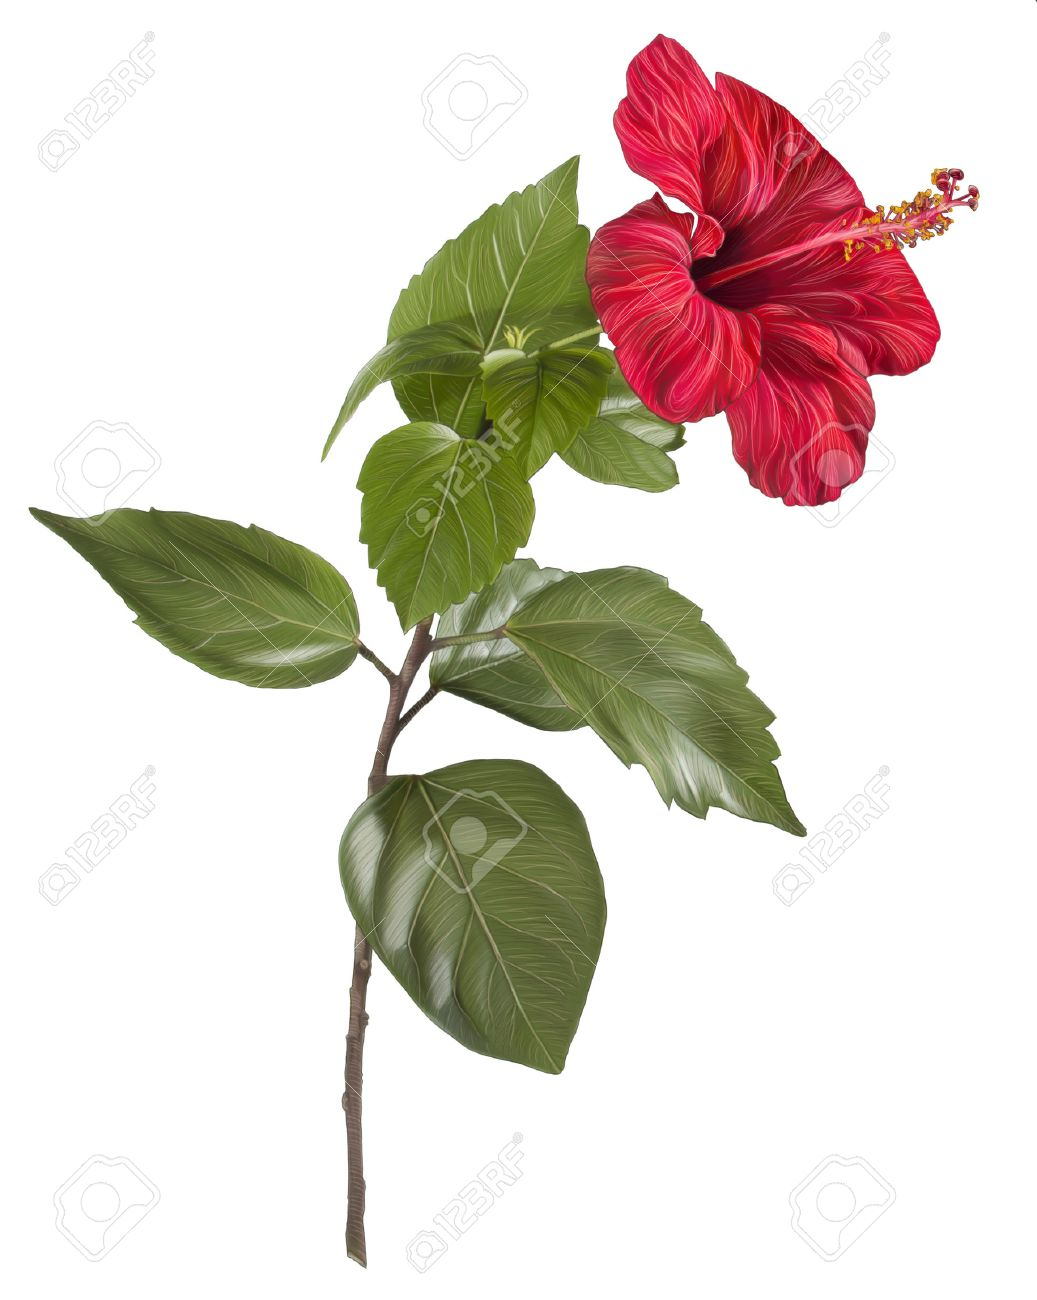 Painting Of Red Flower On White Background Hibiscus Hand Drawing Stock Photo Picture And Royalty Free Image Image 30660865